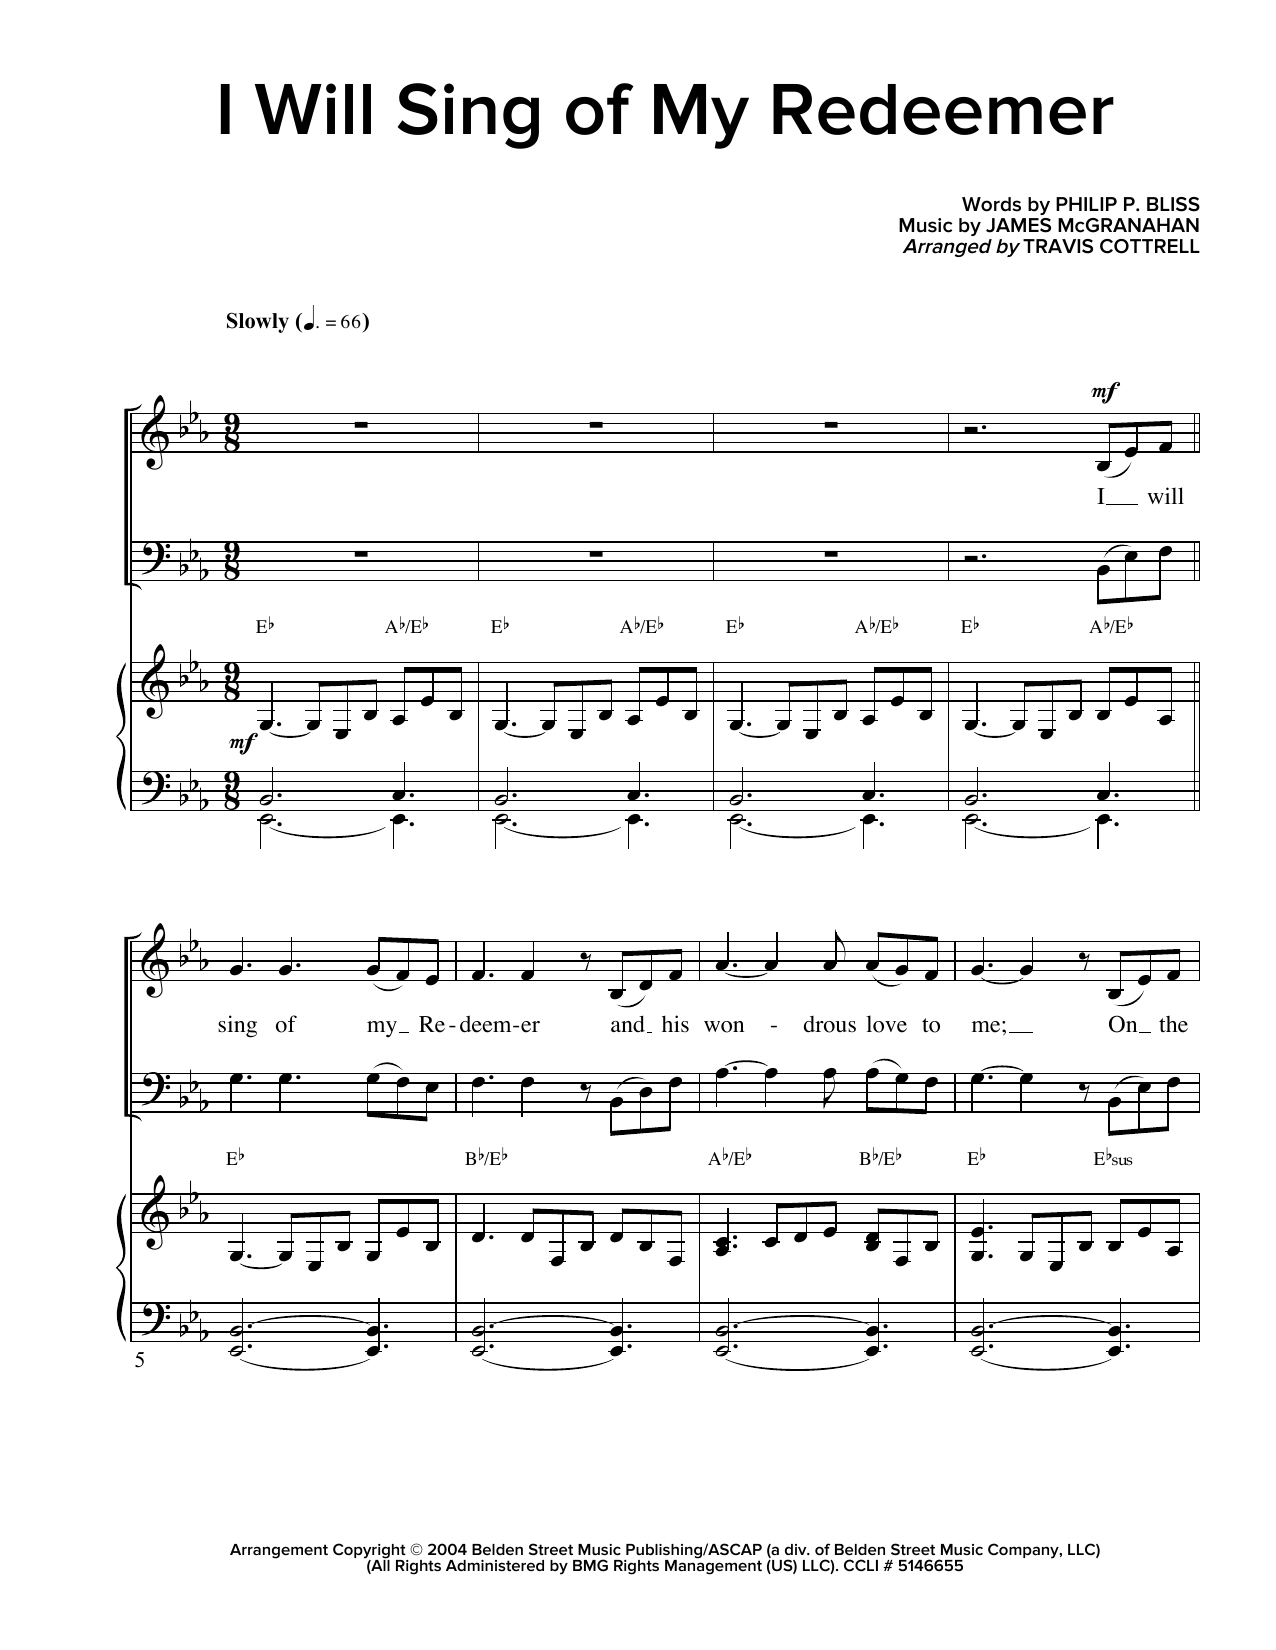 I Will Sing Of My Redeemer (arr. Travis Cottrell) (SATB Choir)